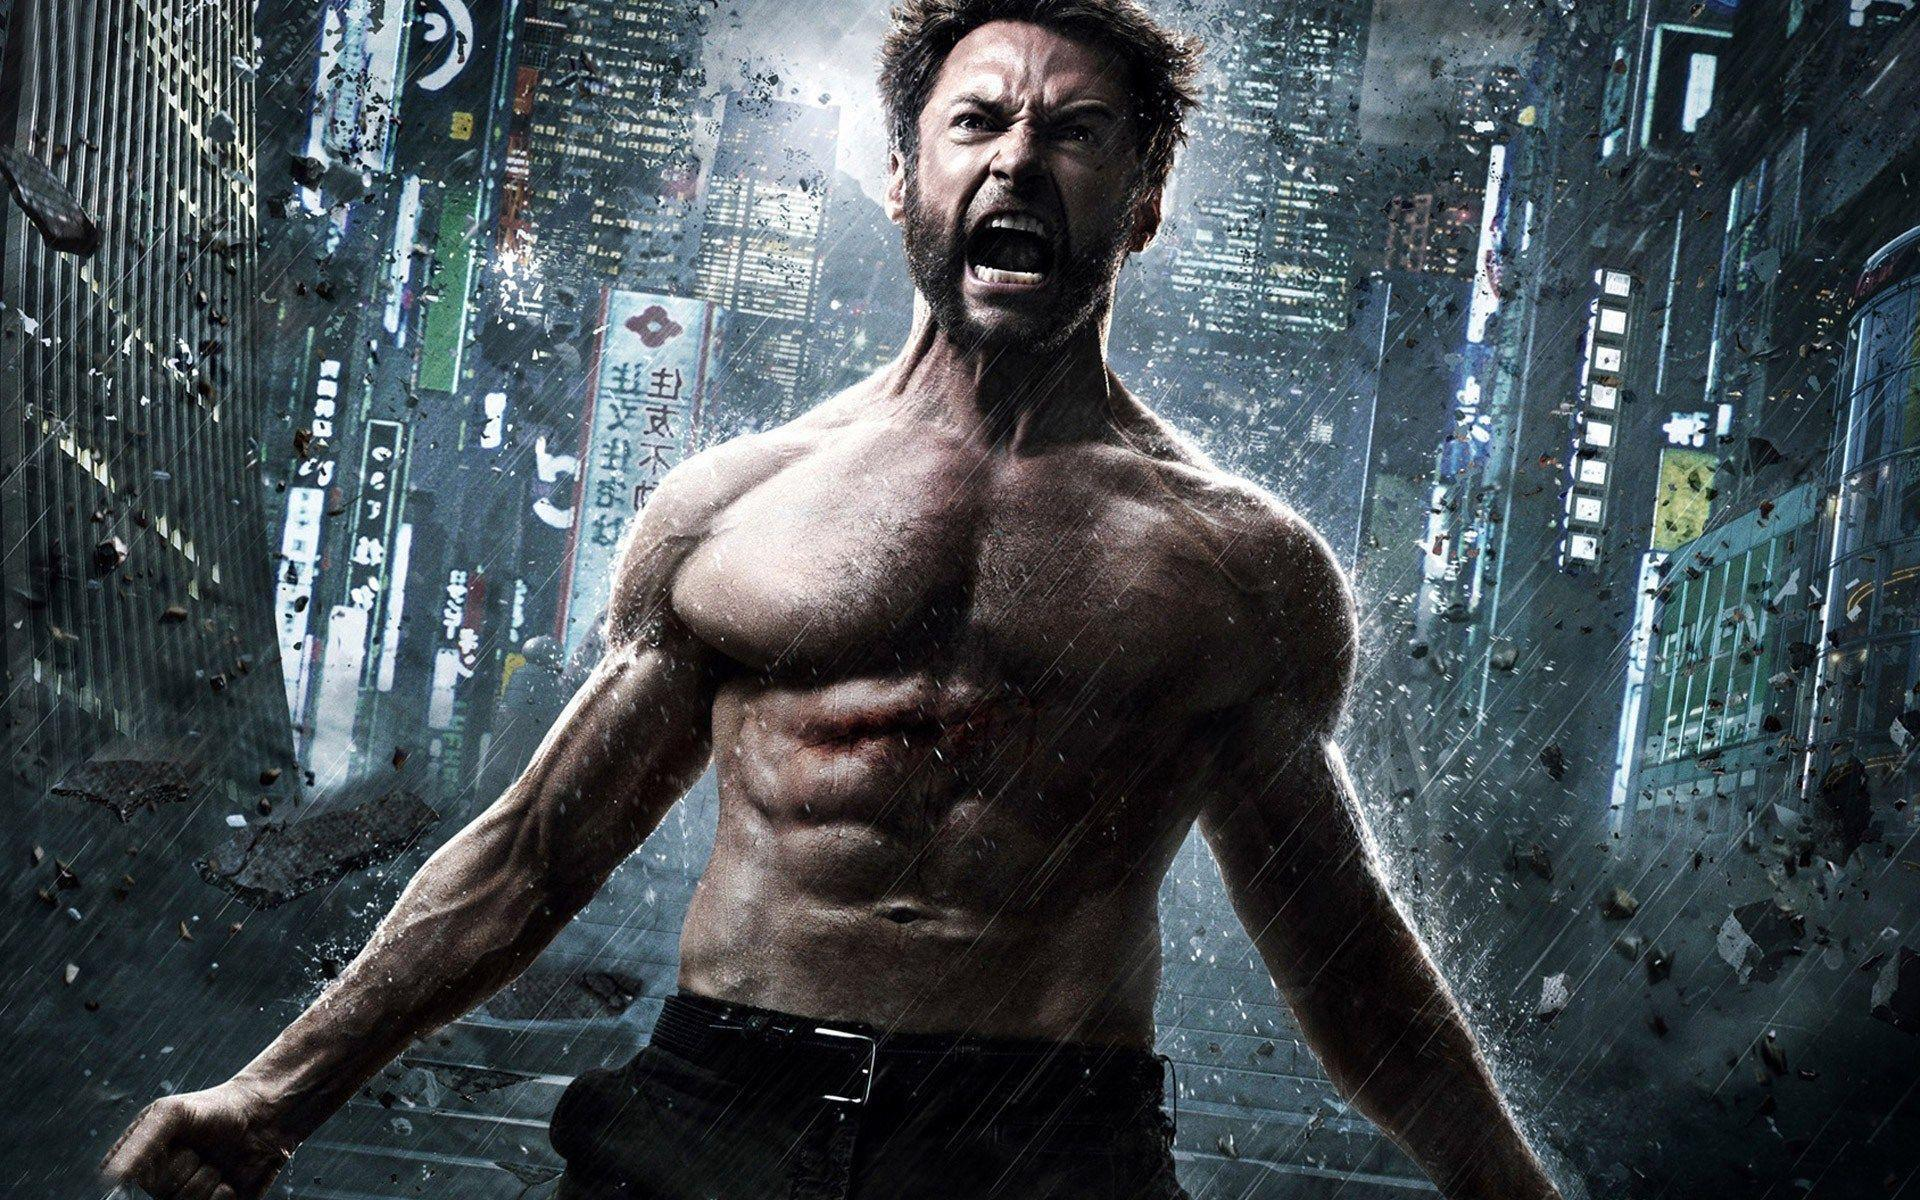 Wallpaper Calendar Superhero : The wolverine wallpapers wallpaper cave